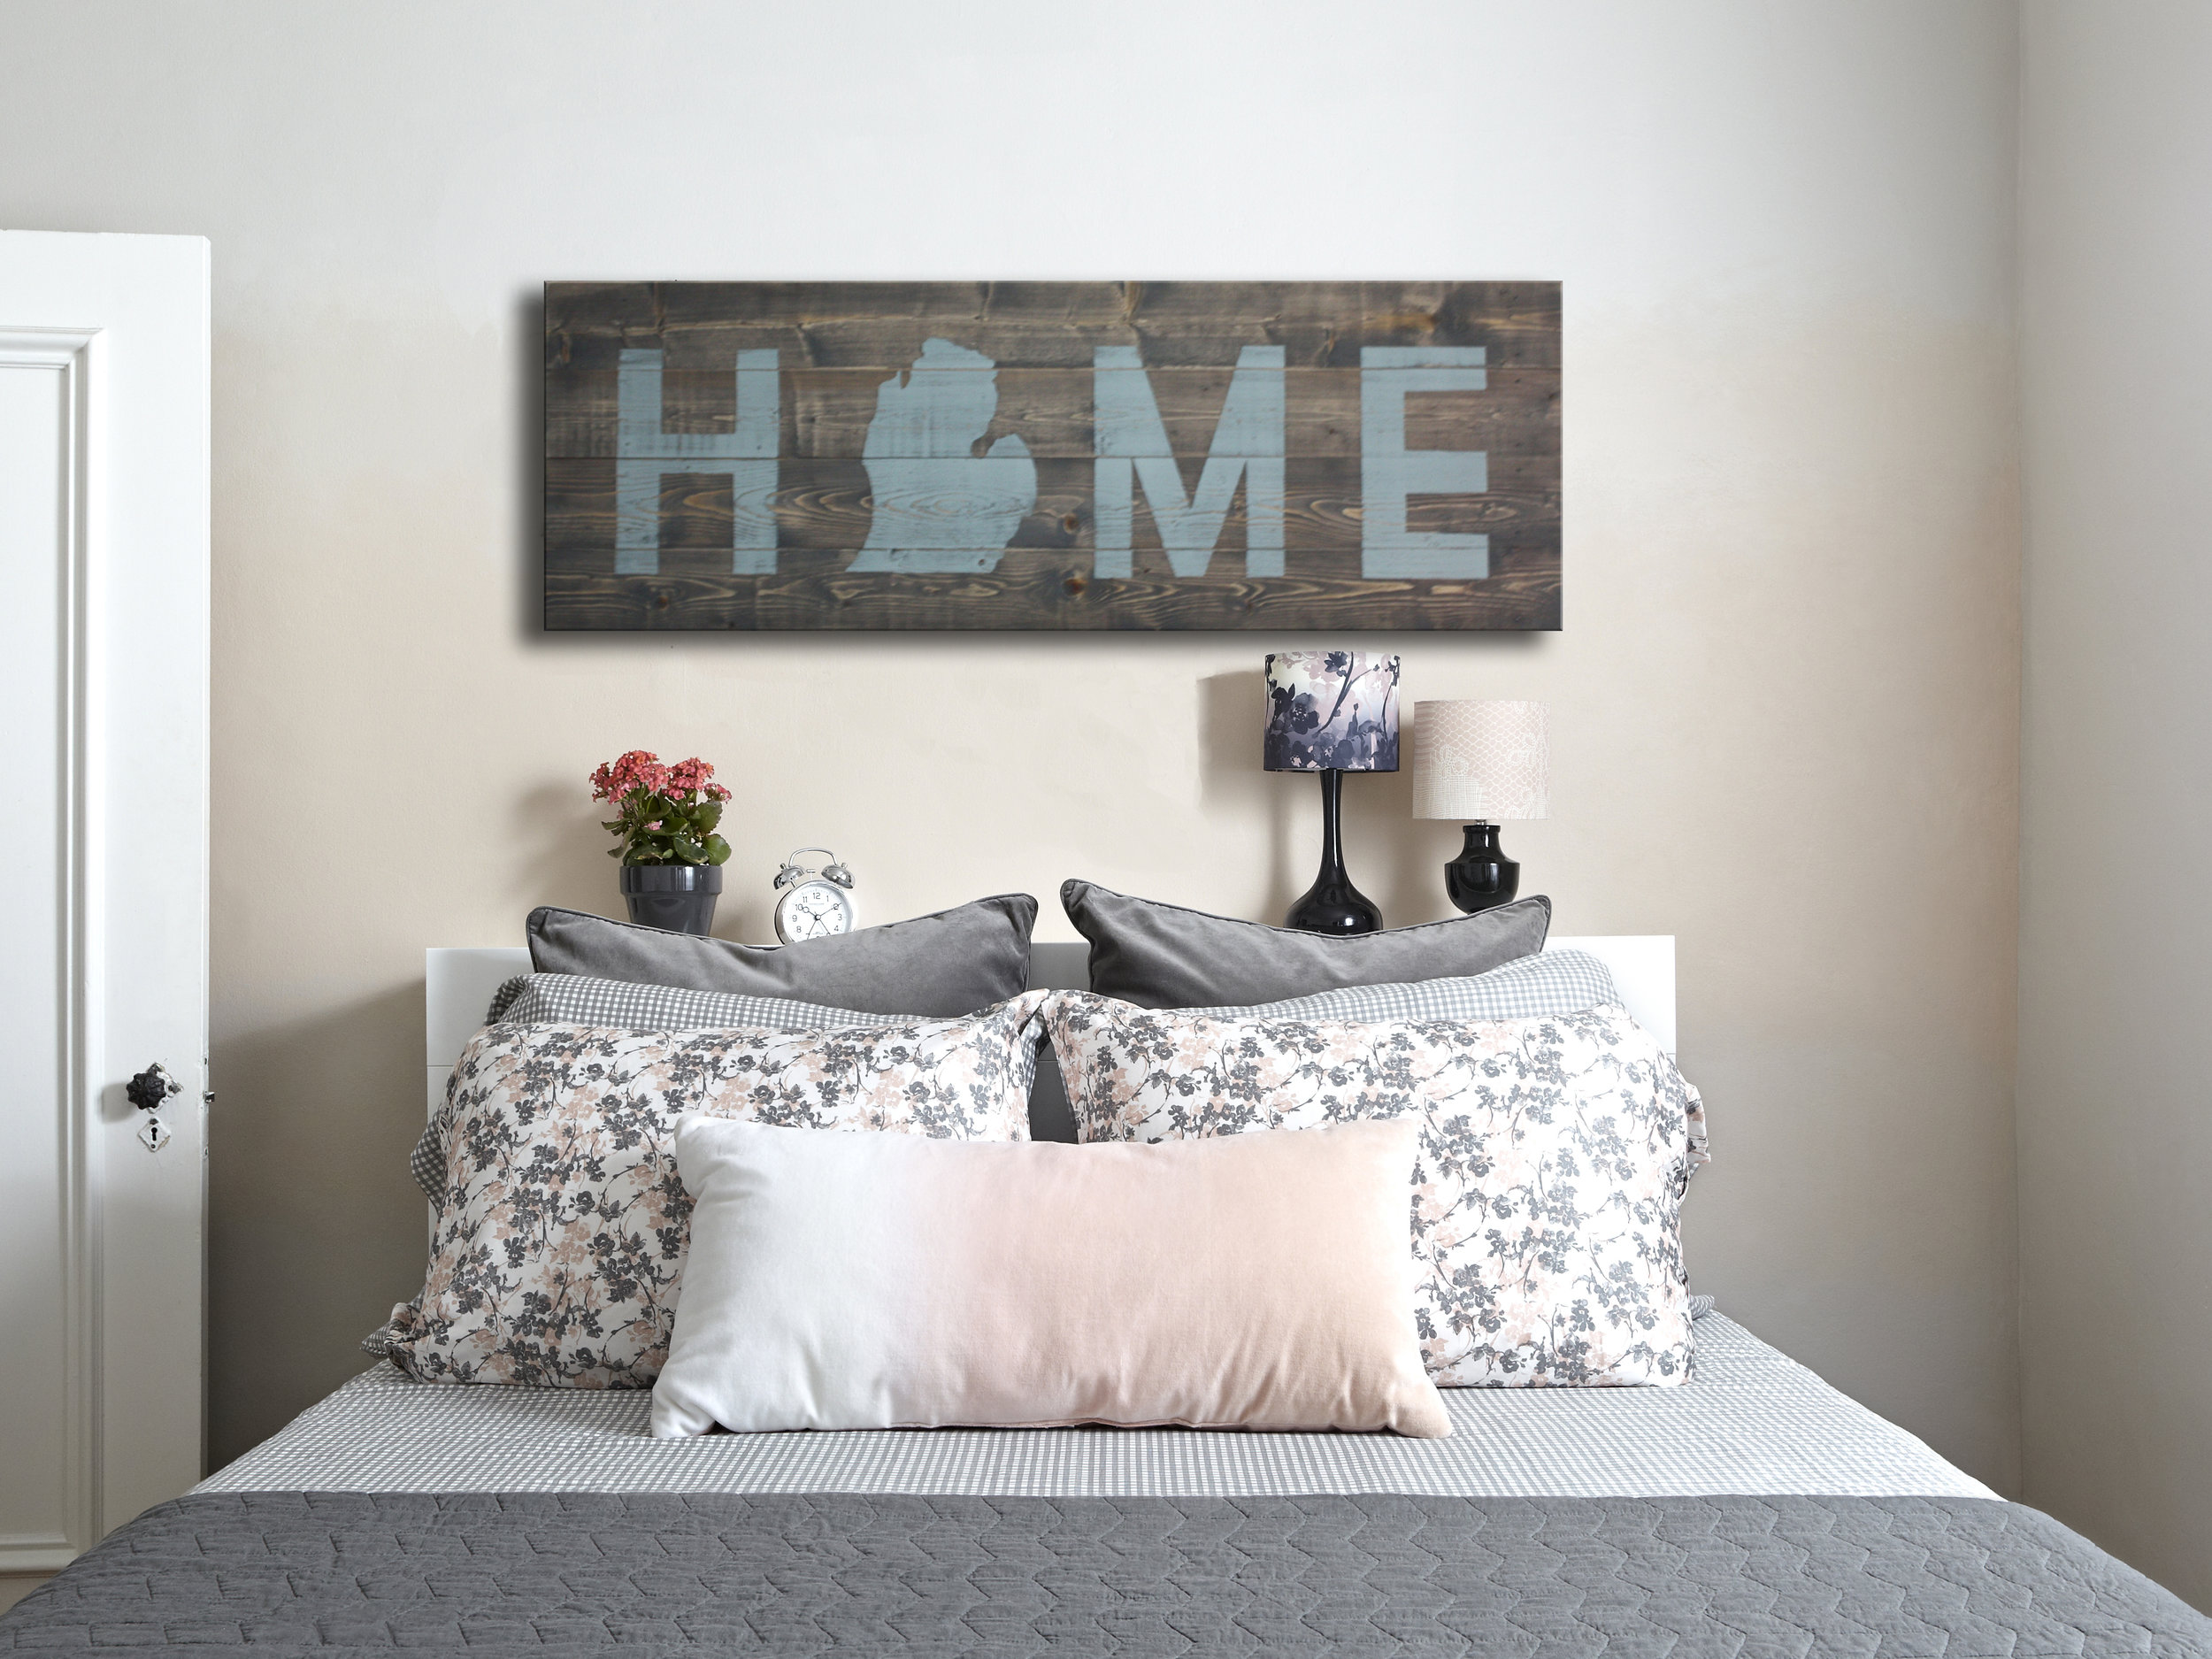 SHOP WOODEN WALL ART